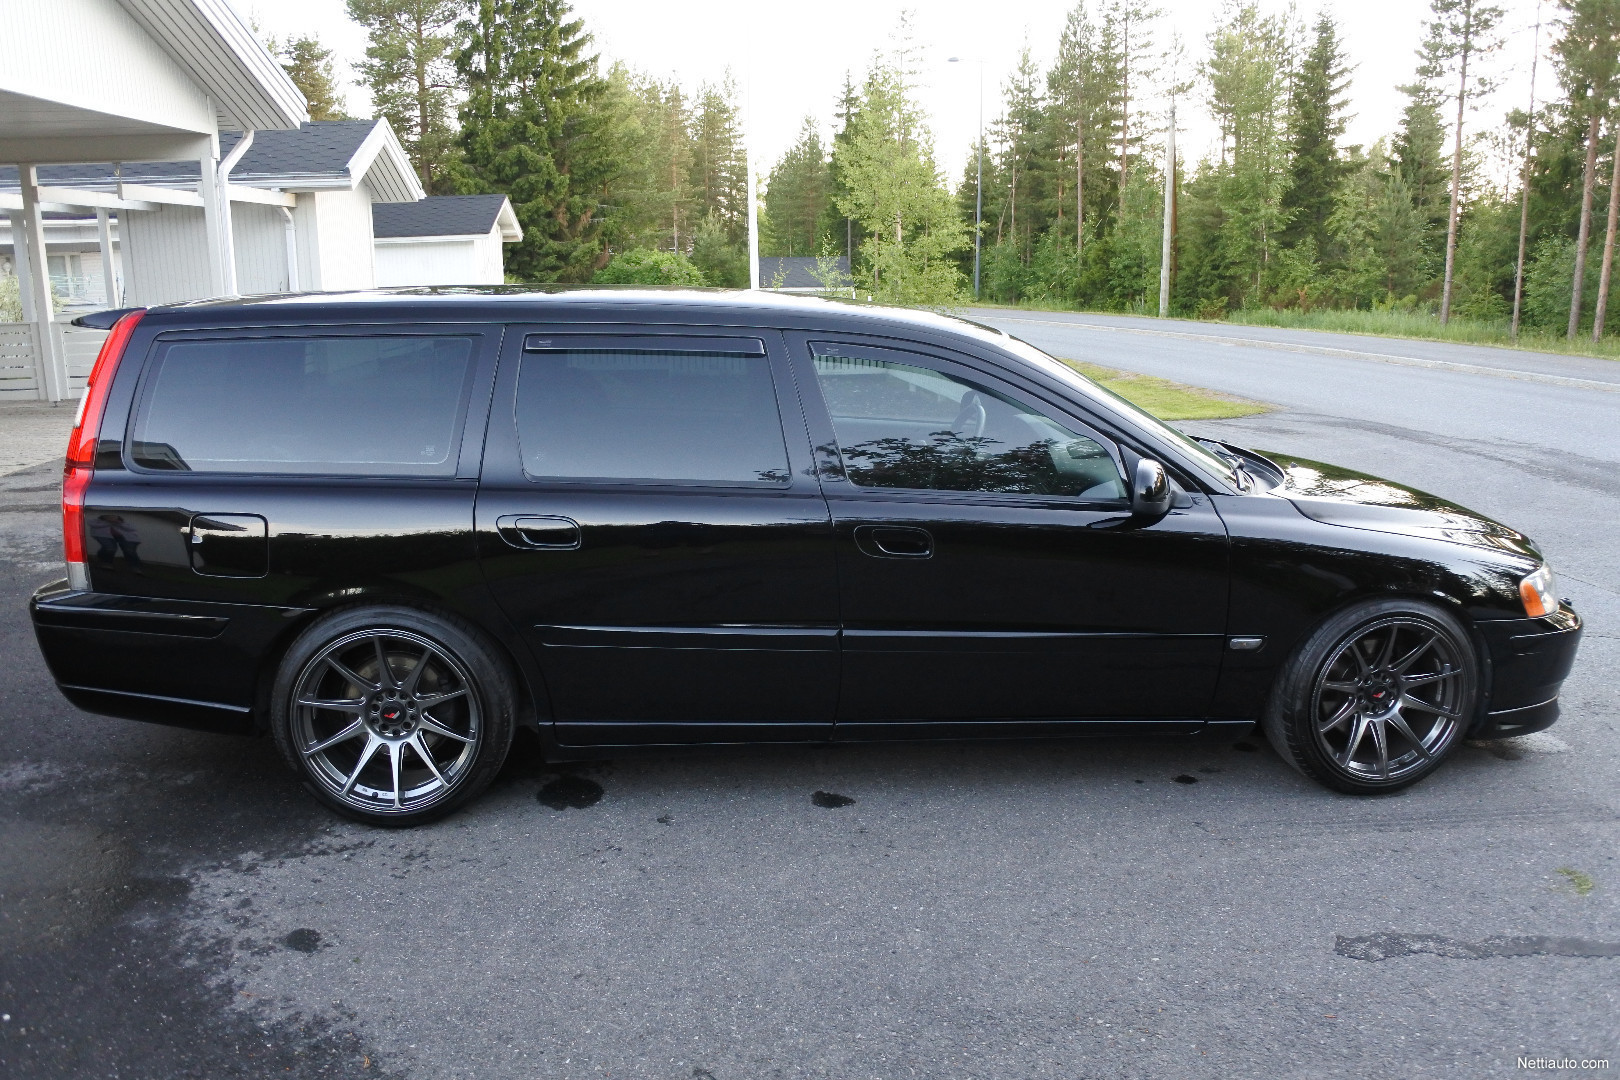 volvo v70 d5 sportswagon busin a station wagon 2002 used vehicle nettiauto. Black Bedroom Furniture Sets. Home Design Ideas